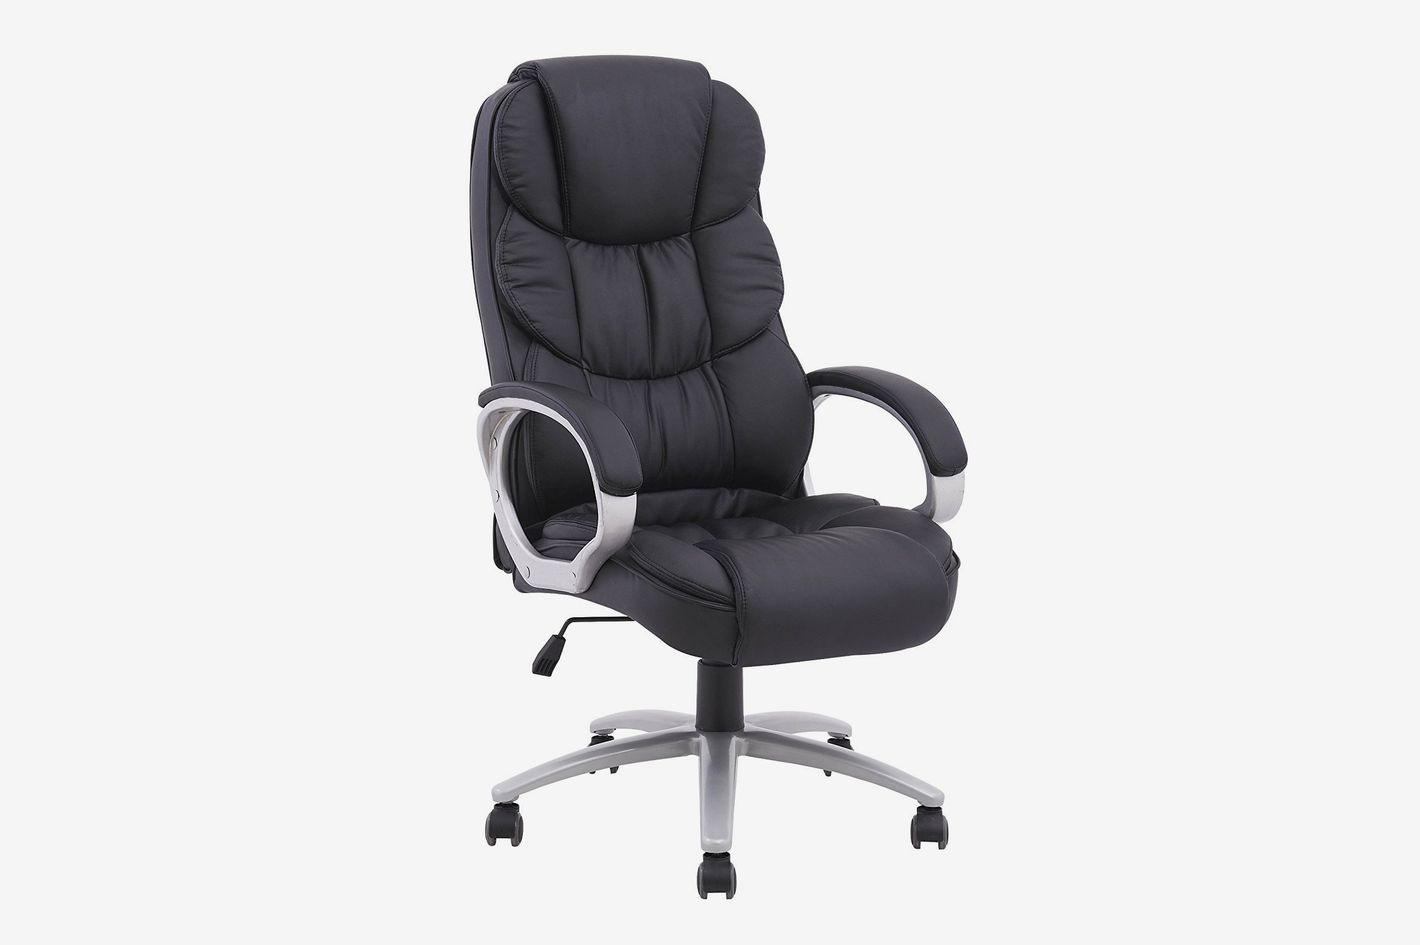 16 Best Office Chairs And Home-Office Chairs